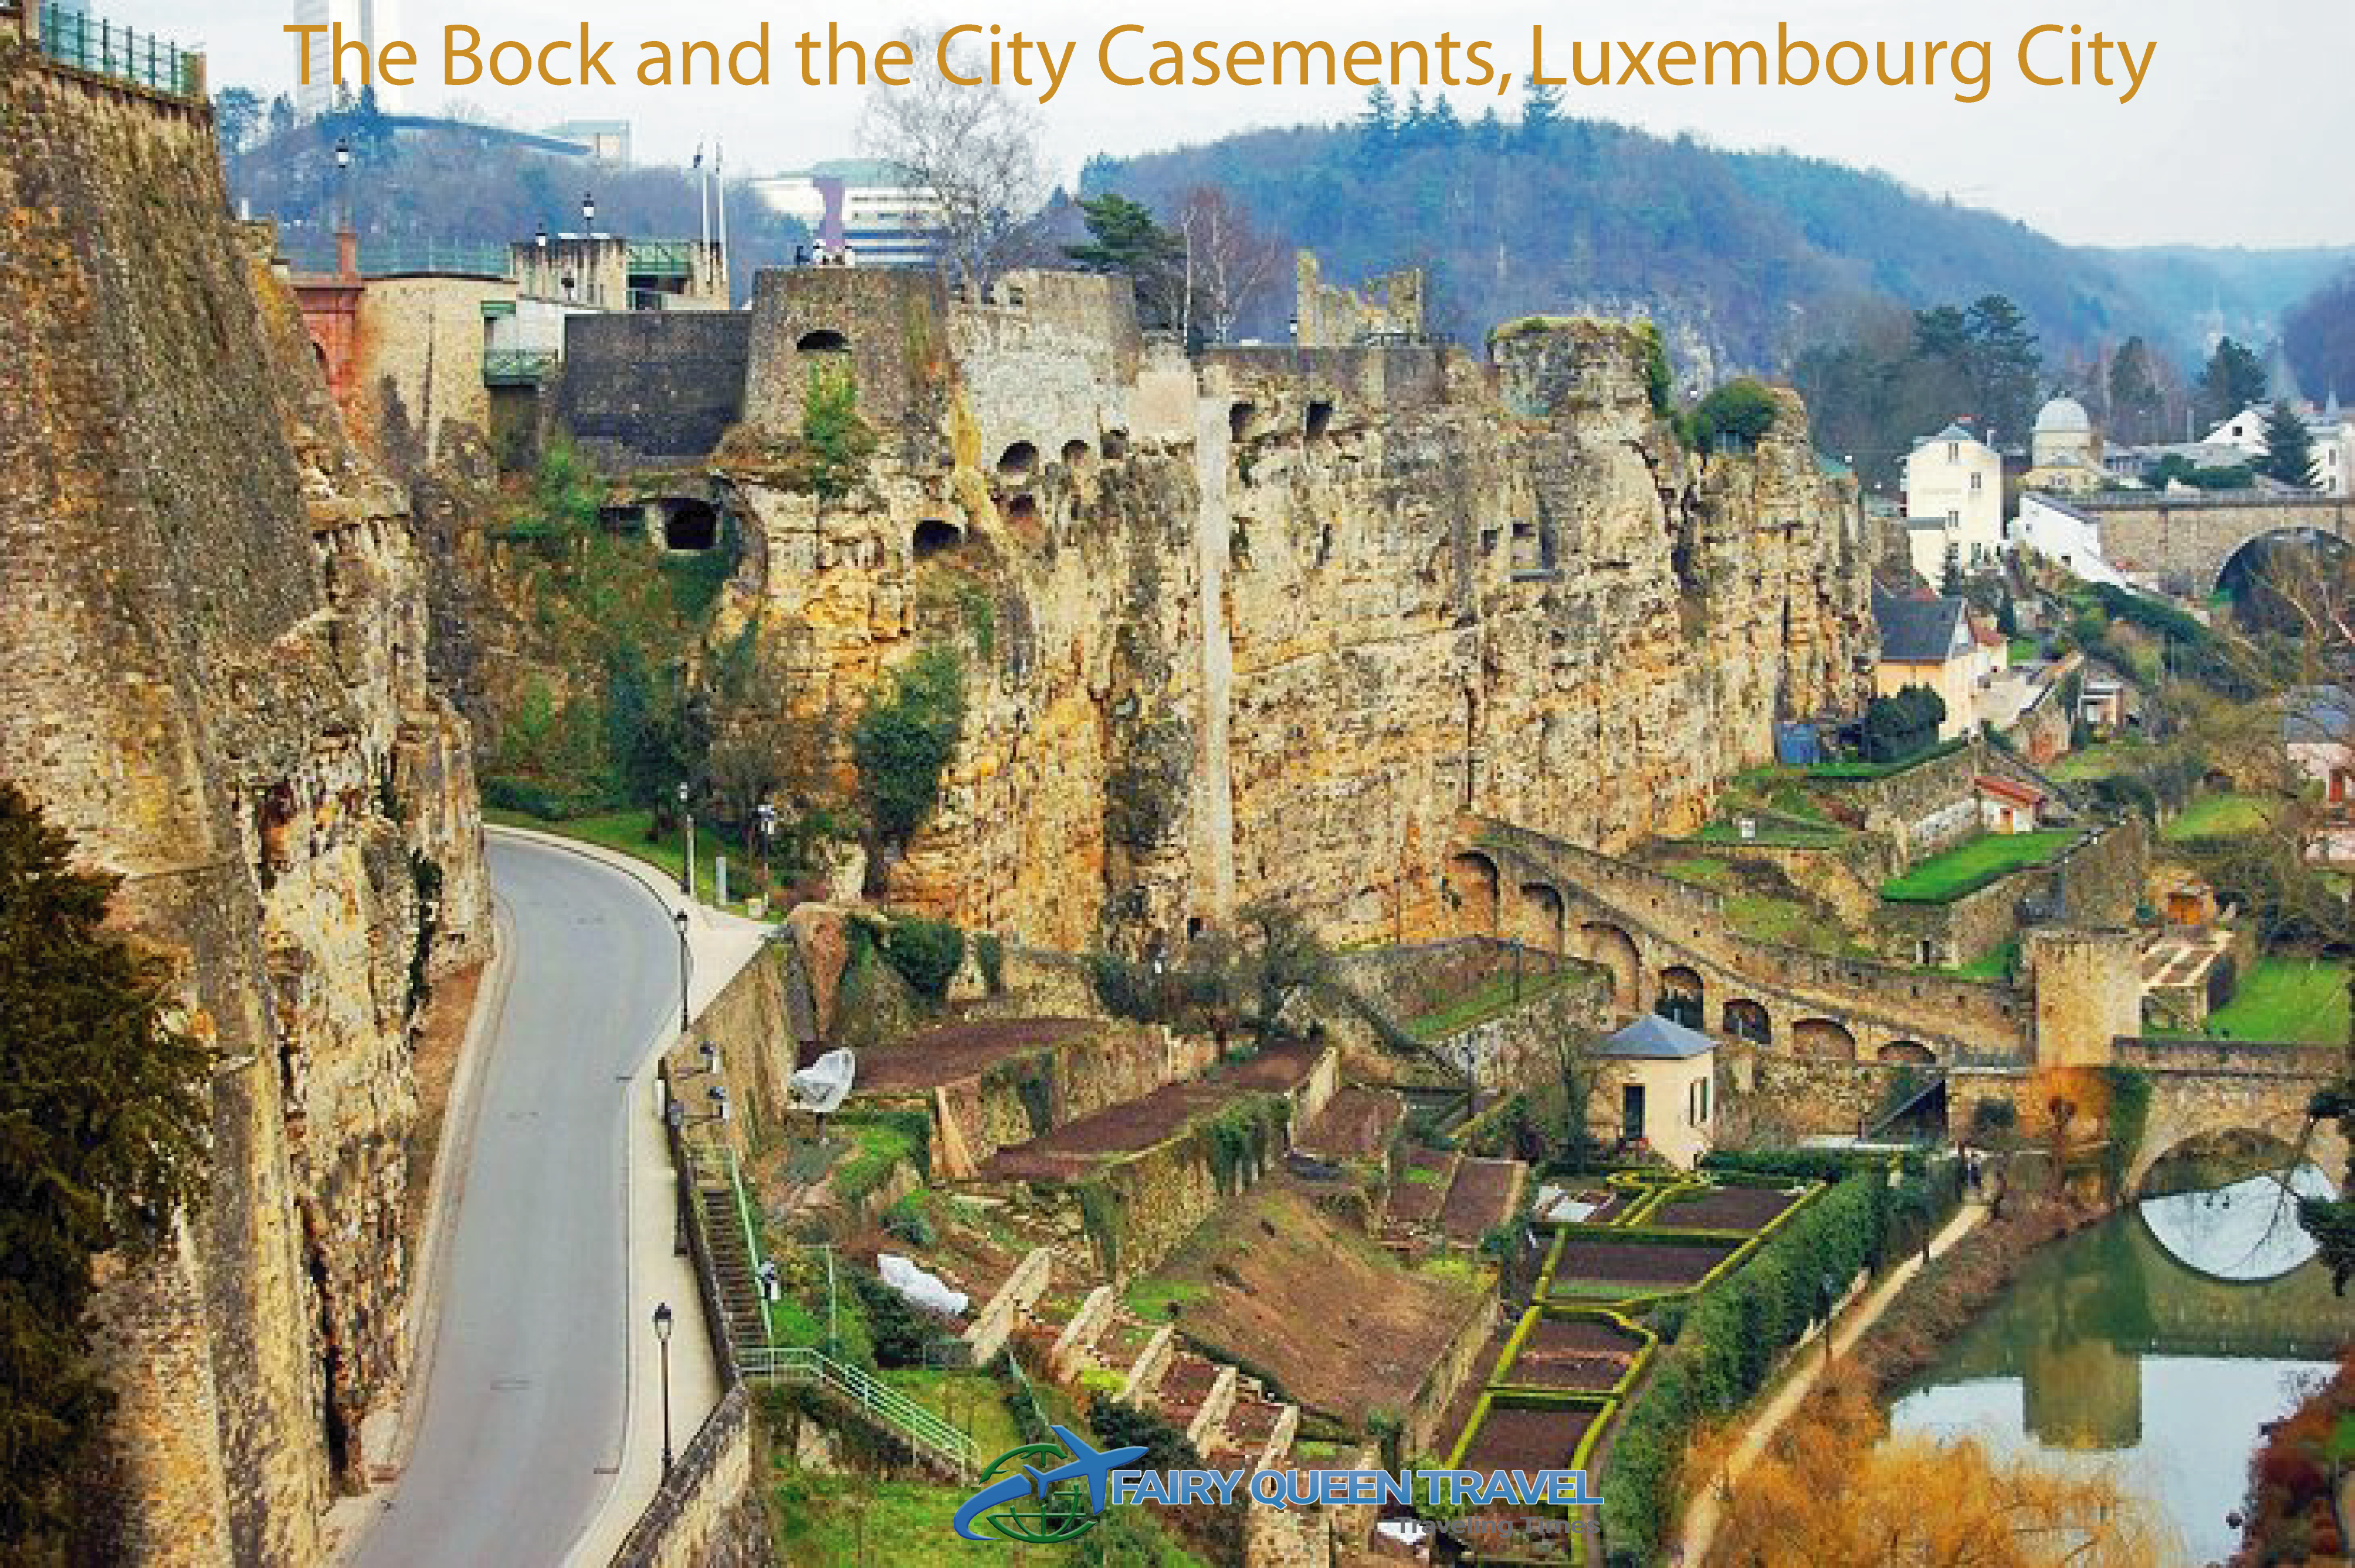 The Bock and the City Casements, Luxembourg City